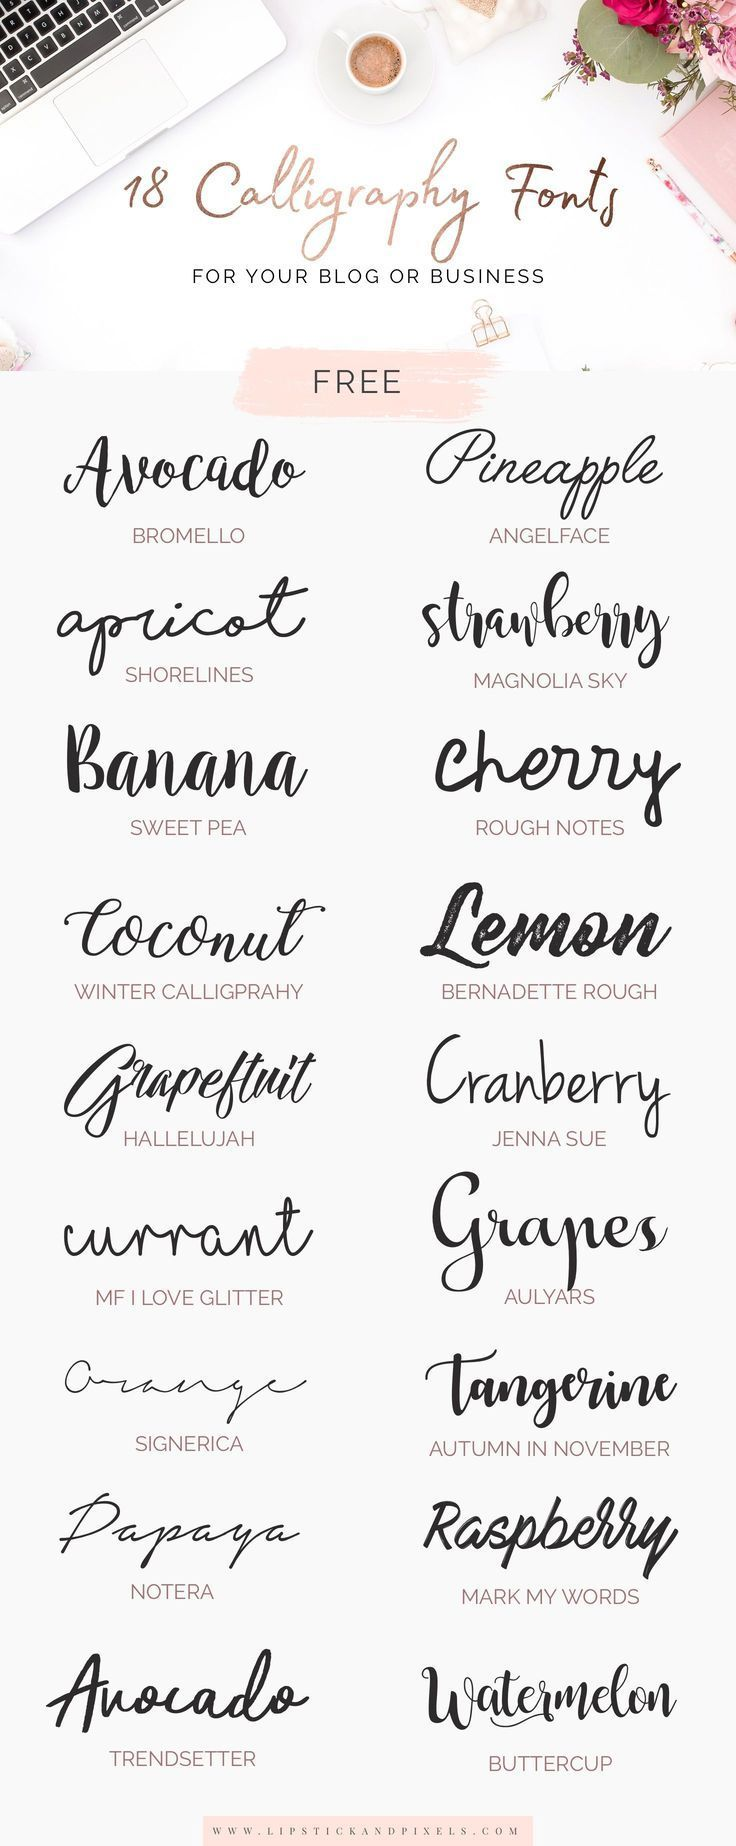 DIY Wrapping Gifts Inspiration : 18 free calligraphy fonts for your blog or business